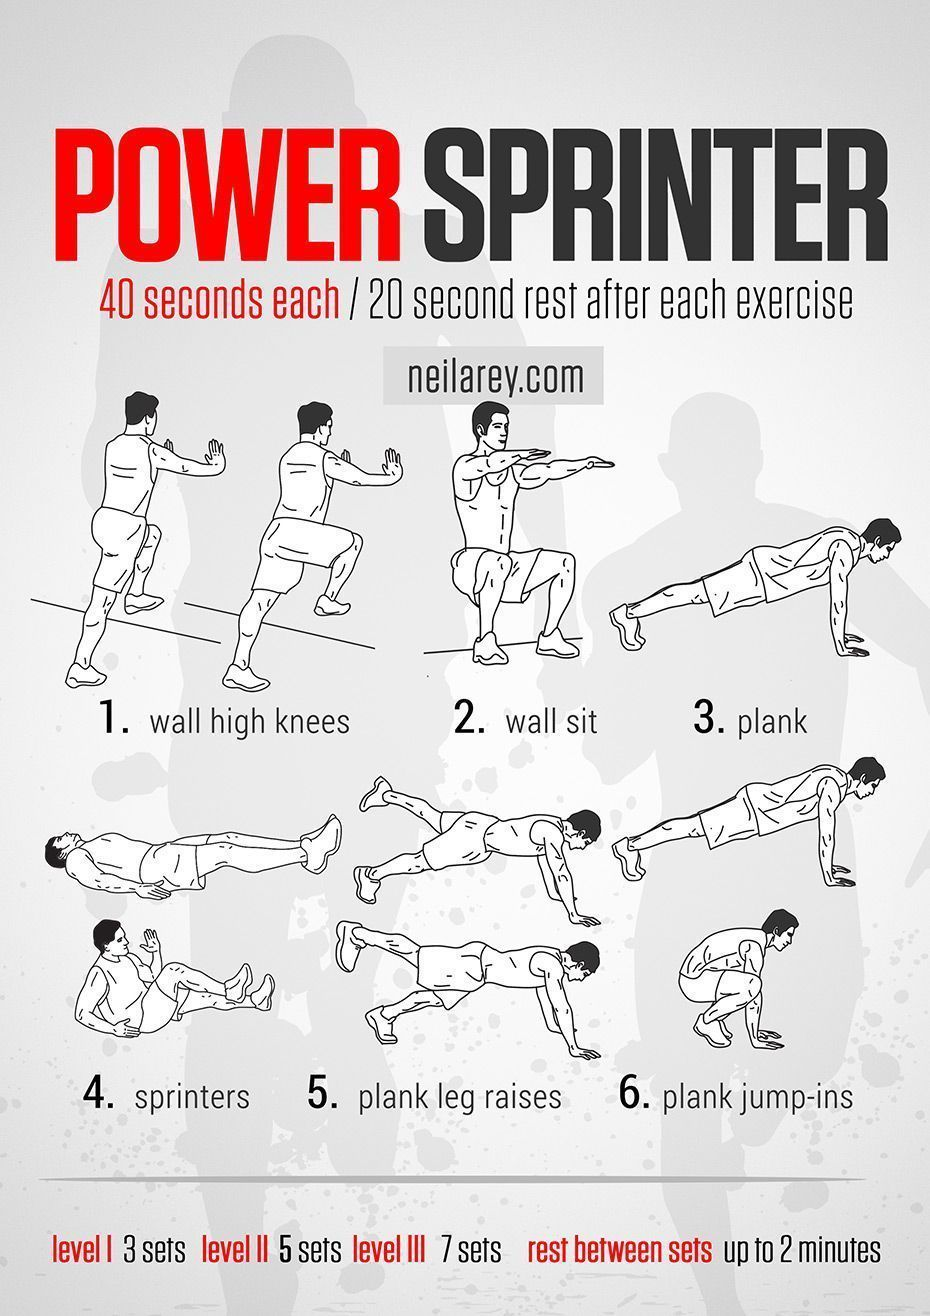 Pin by Soccer Workouts and Drills on Soccer is Awesome | Sprinter